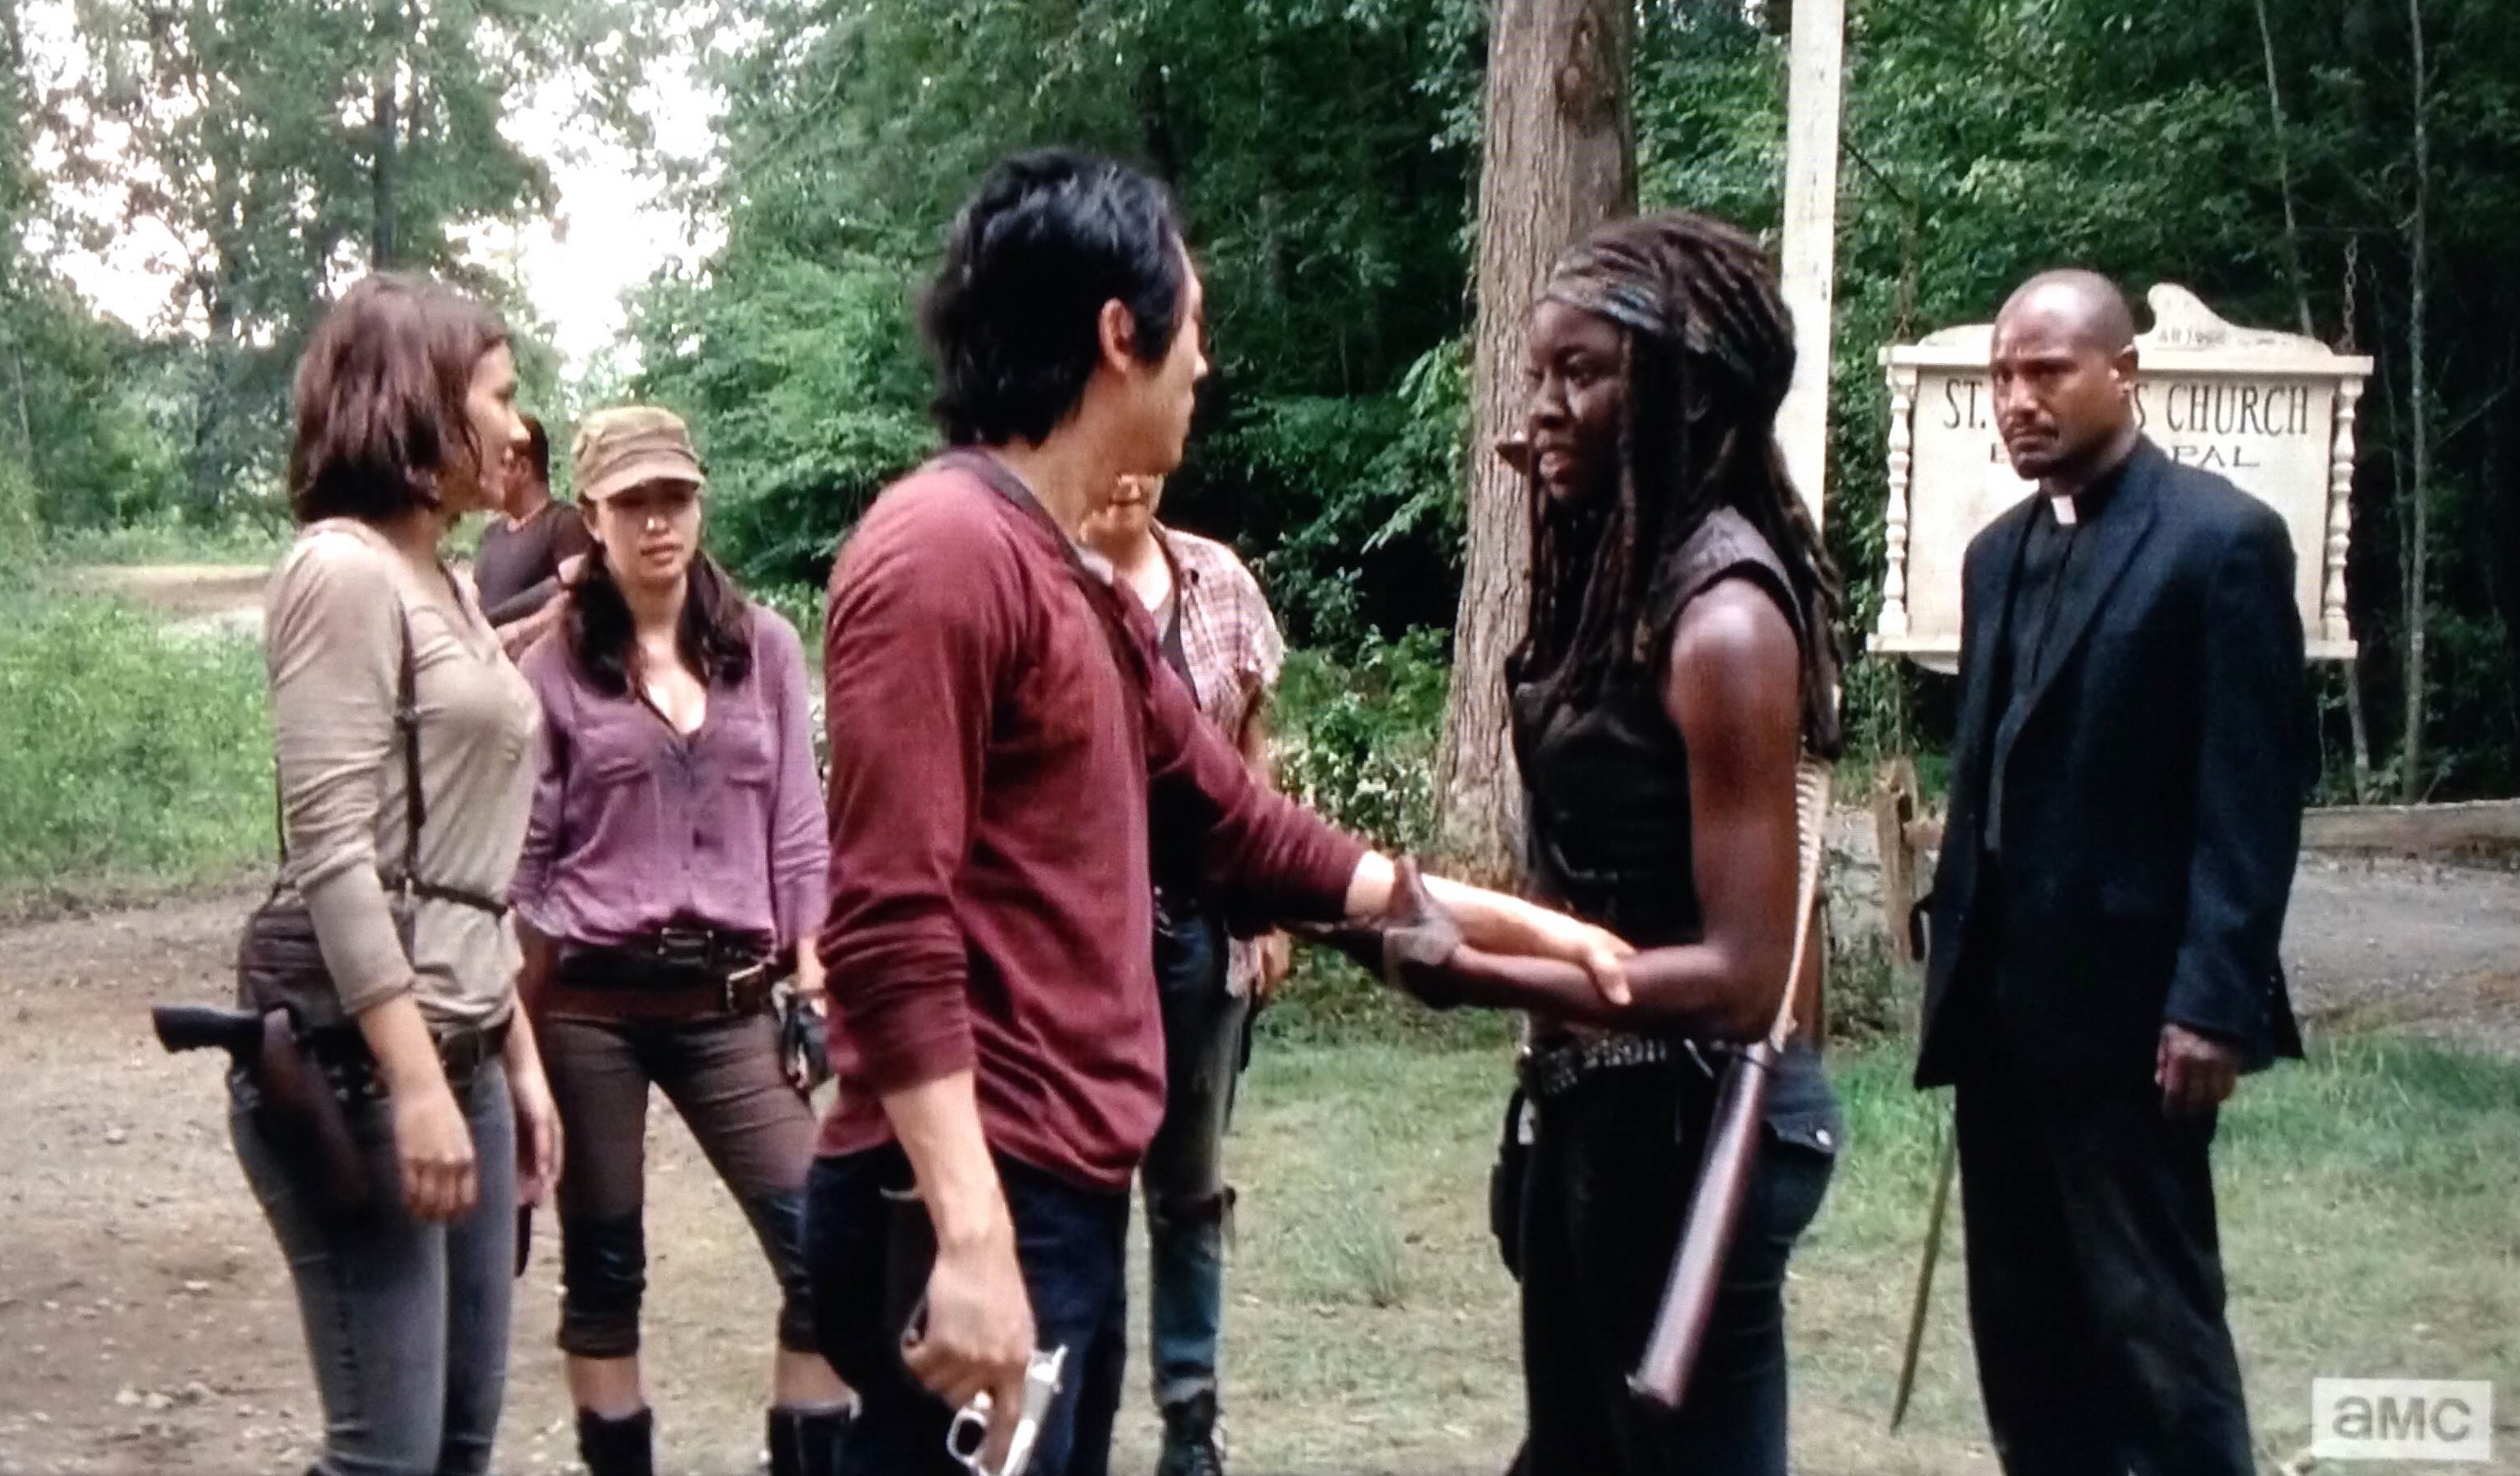 Around As Expected And Gets His Crew Back To The Church Just In Time Keep Walkers From Breaking Out Of They Had Broken Into